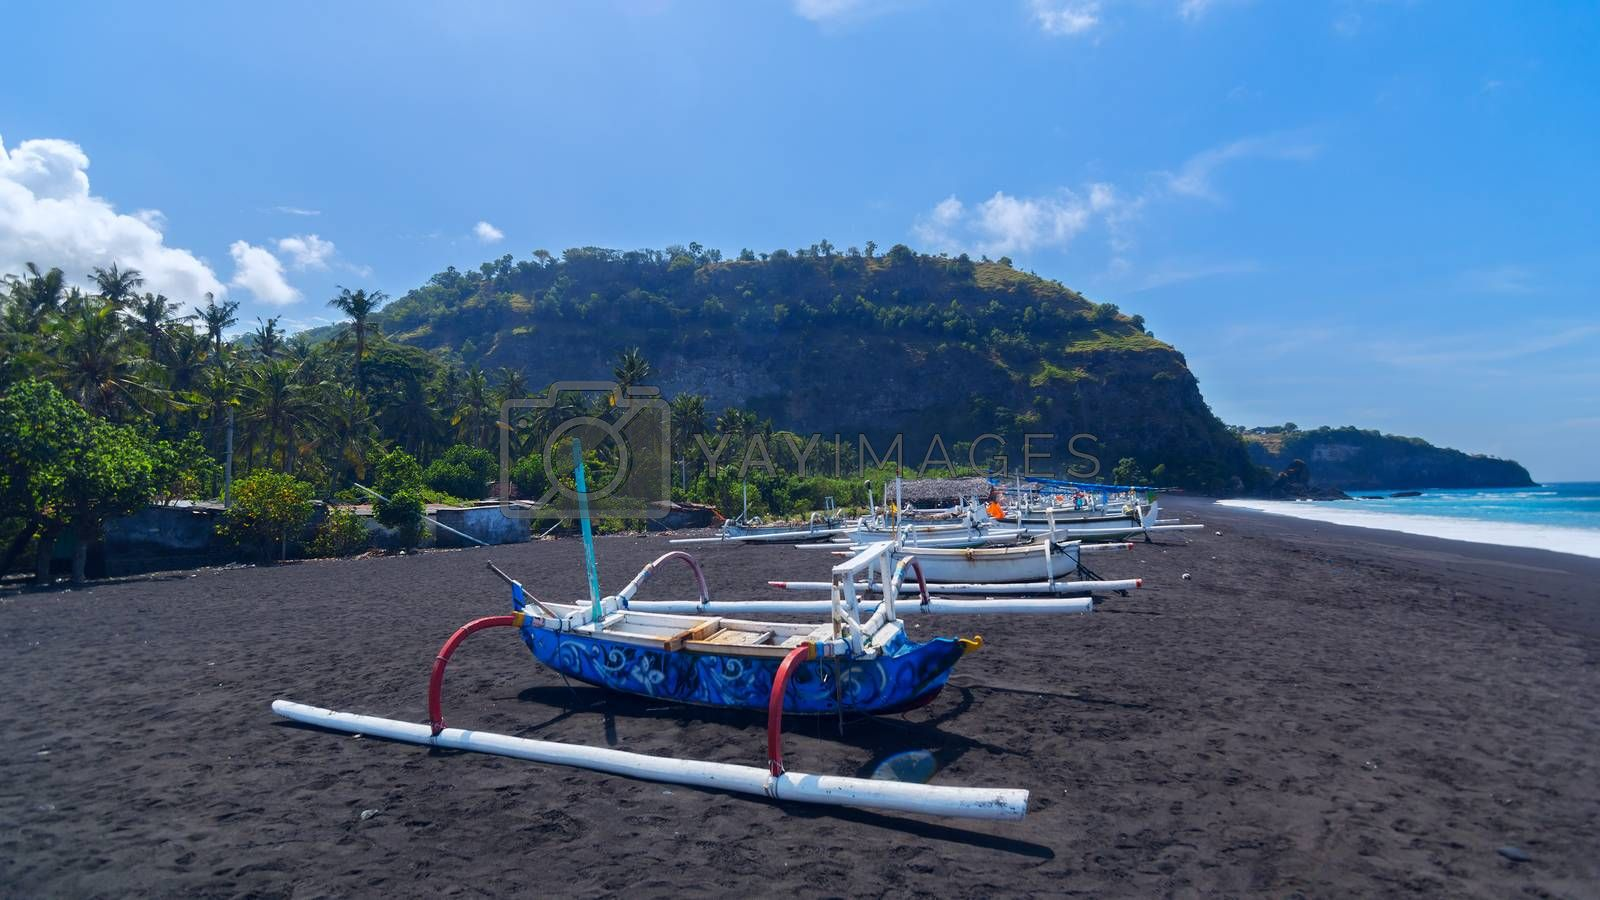 Junk on the beach of black sand on the island of Bali in Indonesia. Summer sunny day.